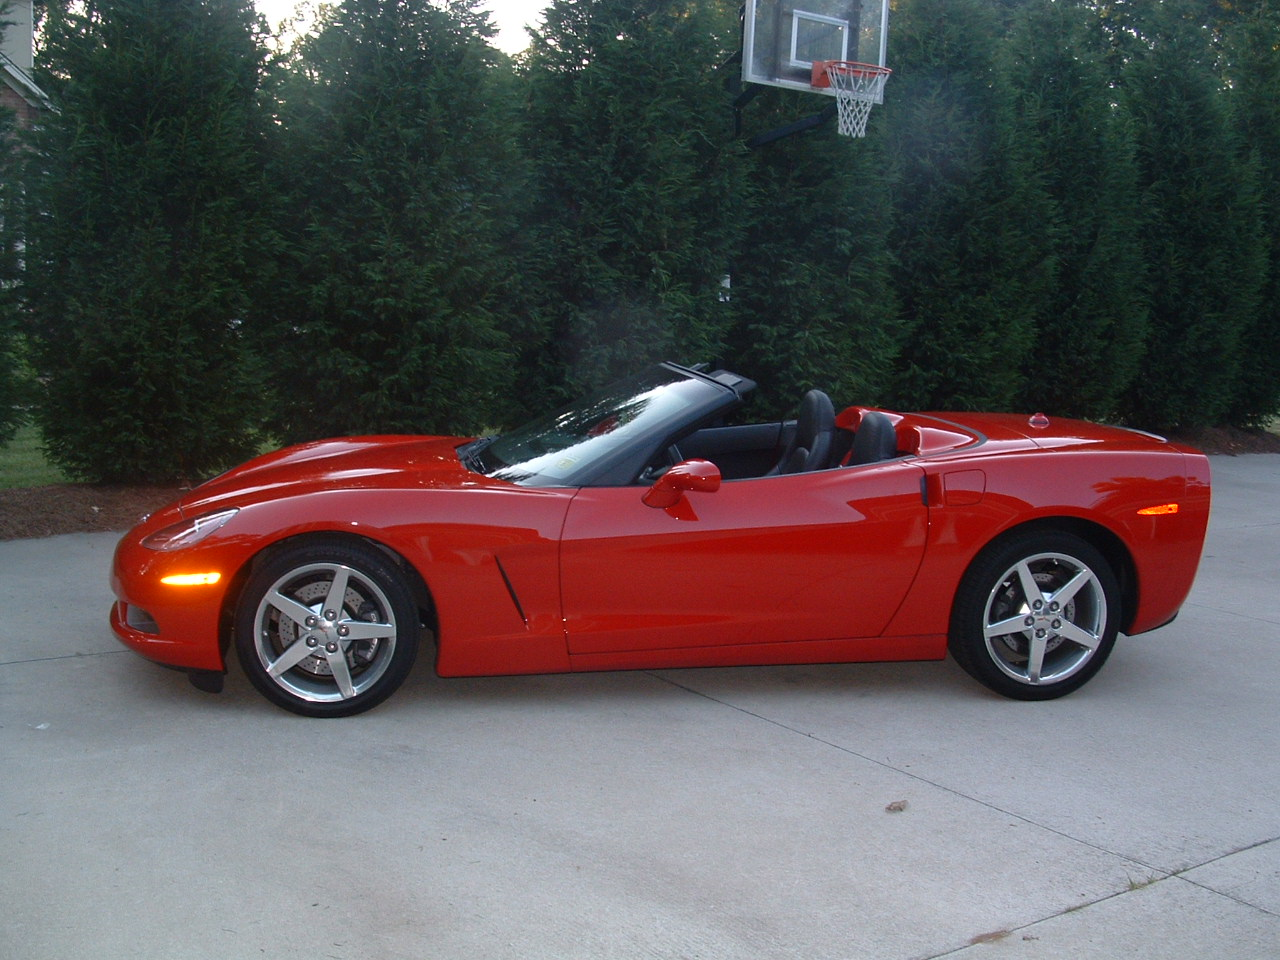 Torch red vs Victory red CorvetteForum Chevrolet